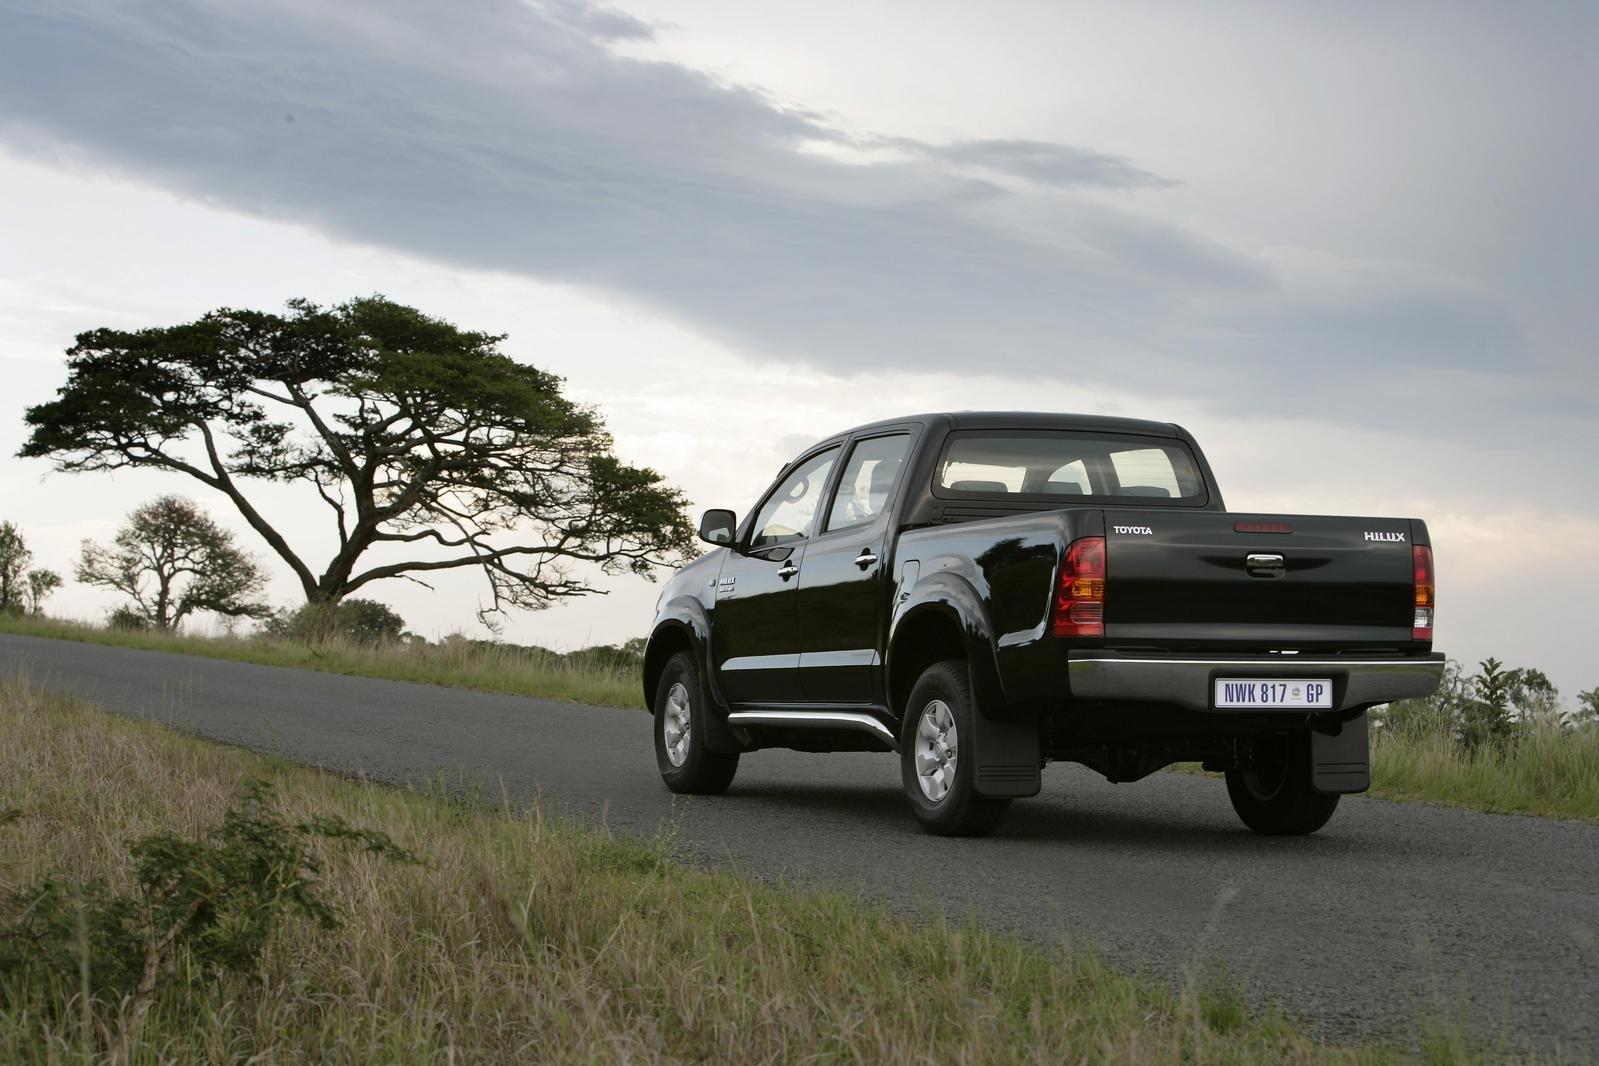 2007 toyota hilux picture 158010 car review top speed. Black Bedroom Furniture Sets. Home Design Ideas